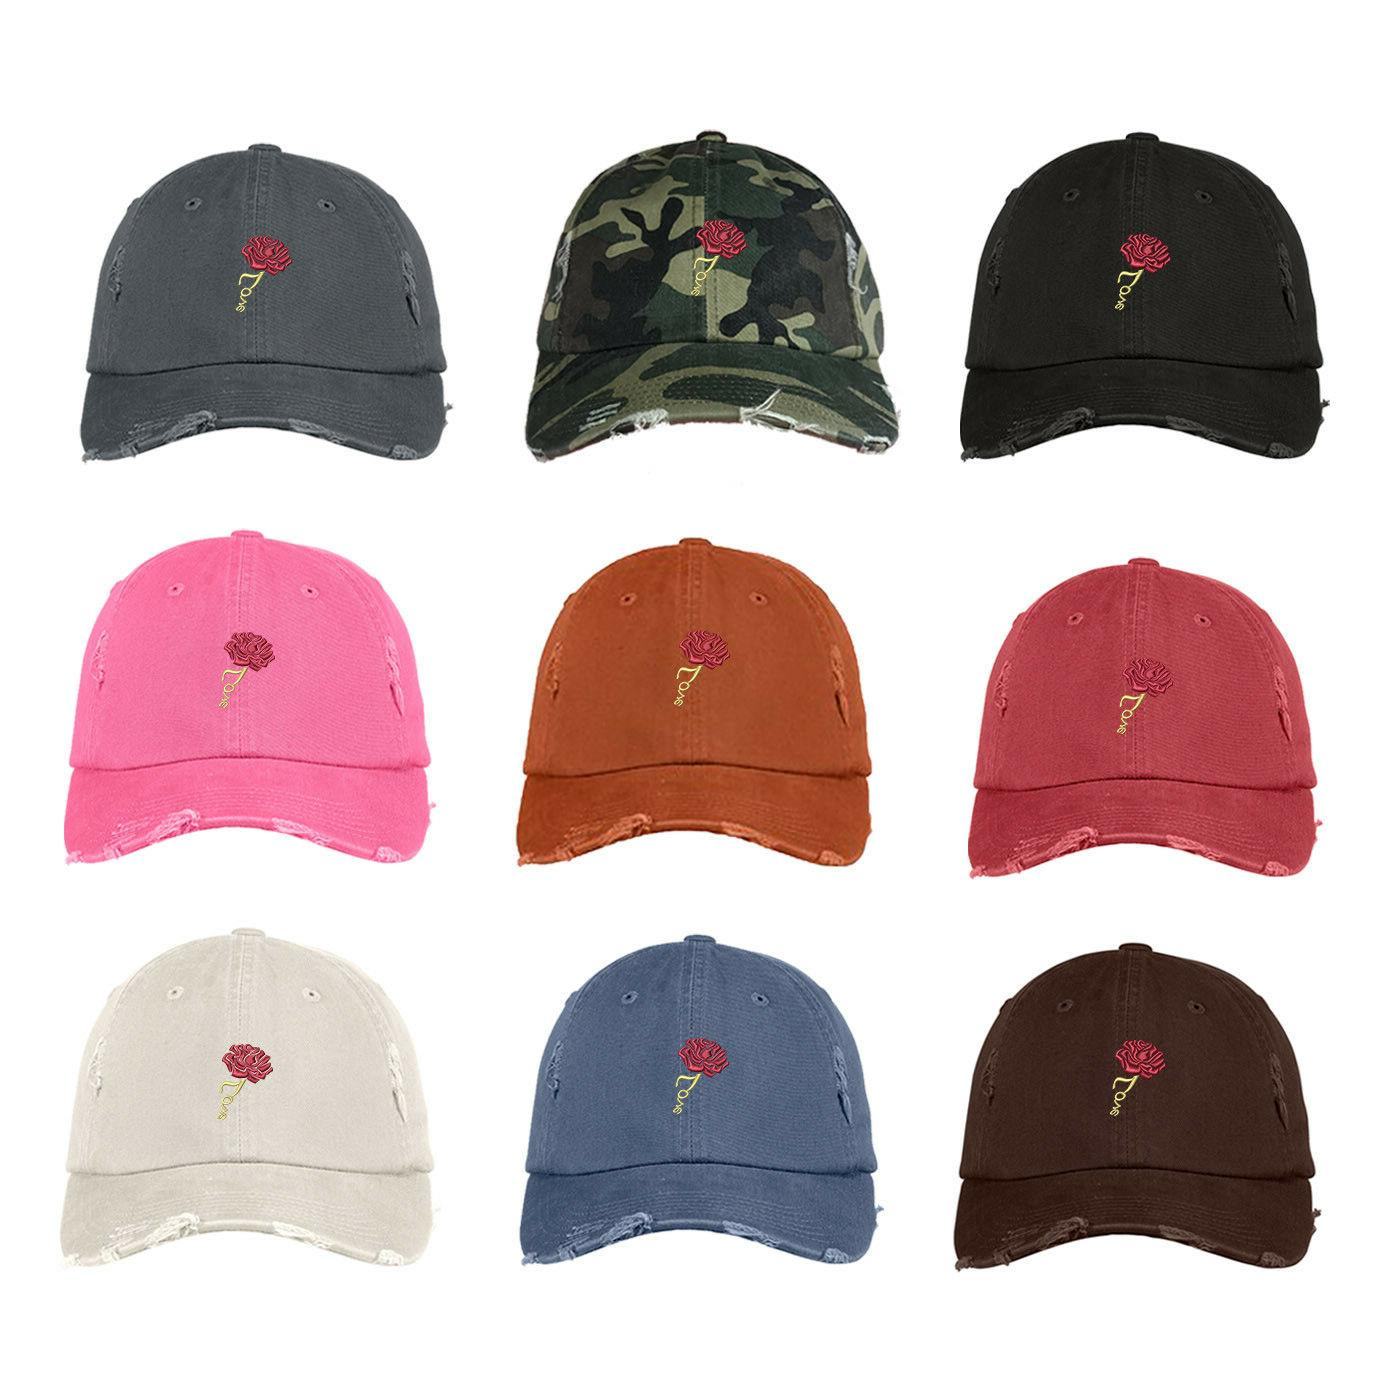 ROSE LOVE Dad Hat Embroidered Floral Cap - Many Colors